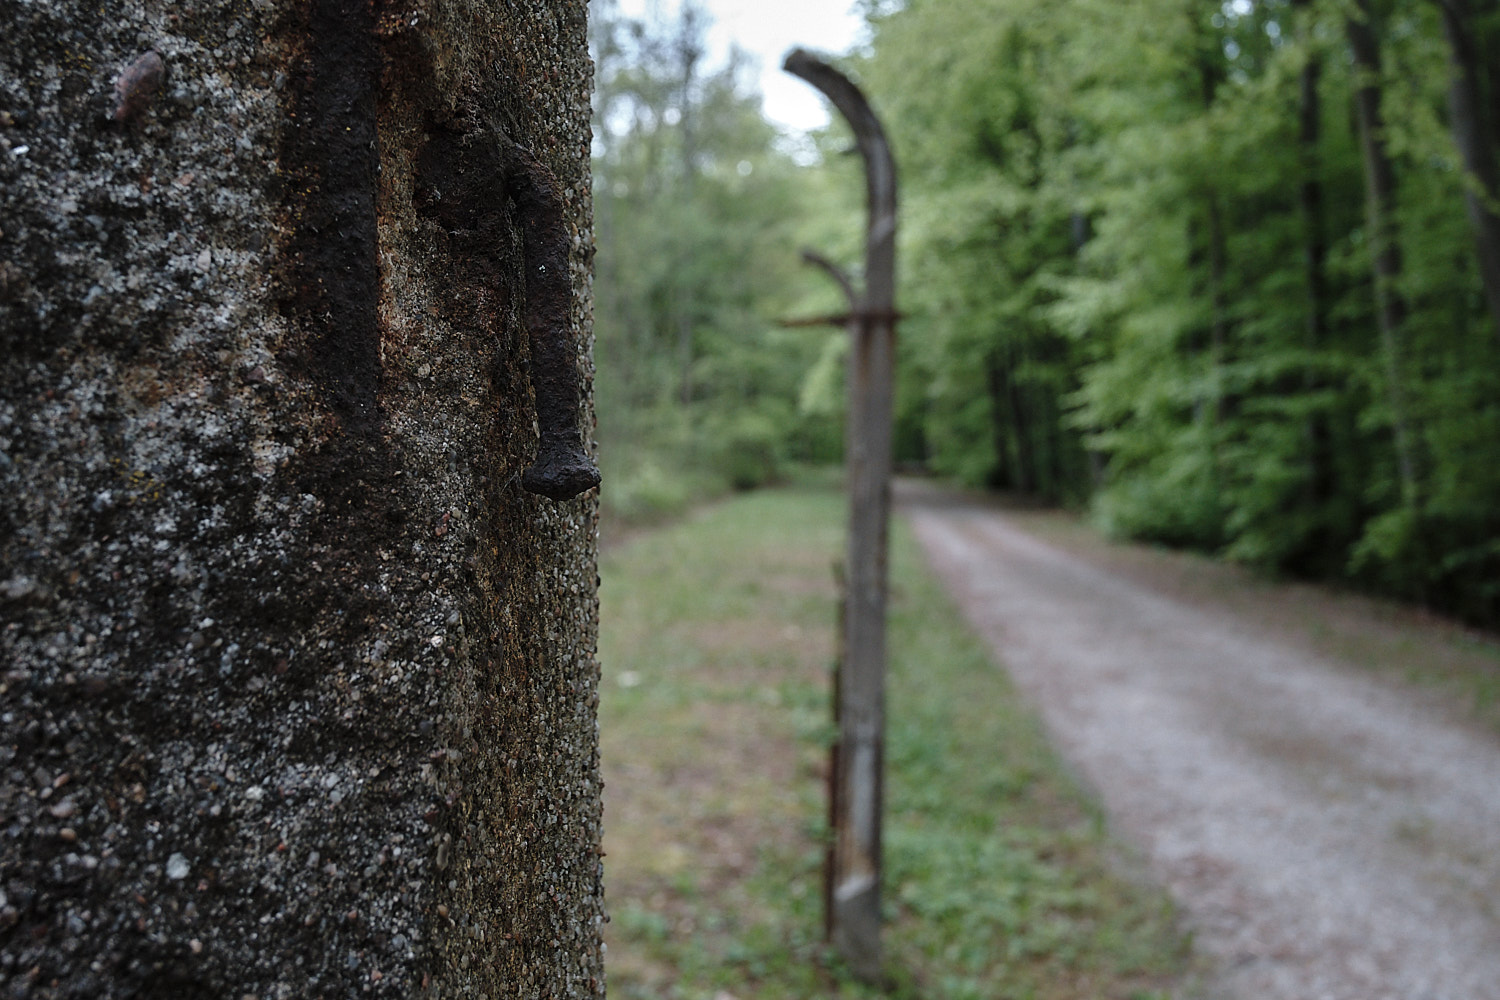 Outer original dreadful looming fence of the Memorial Site of the KZ-Buchenwald, Weimar, Germany